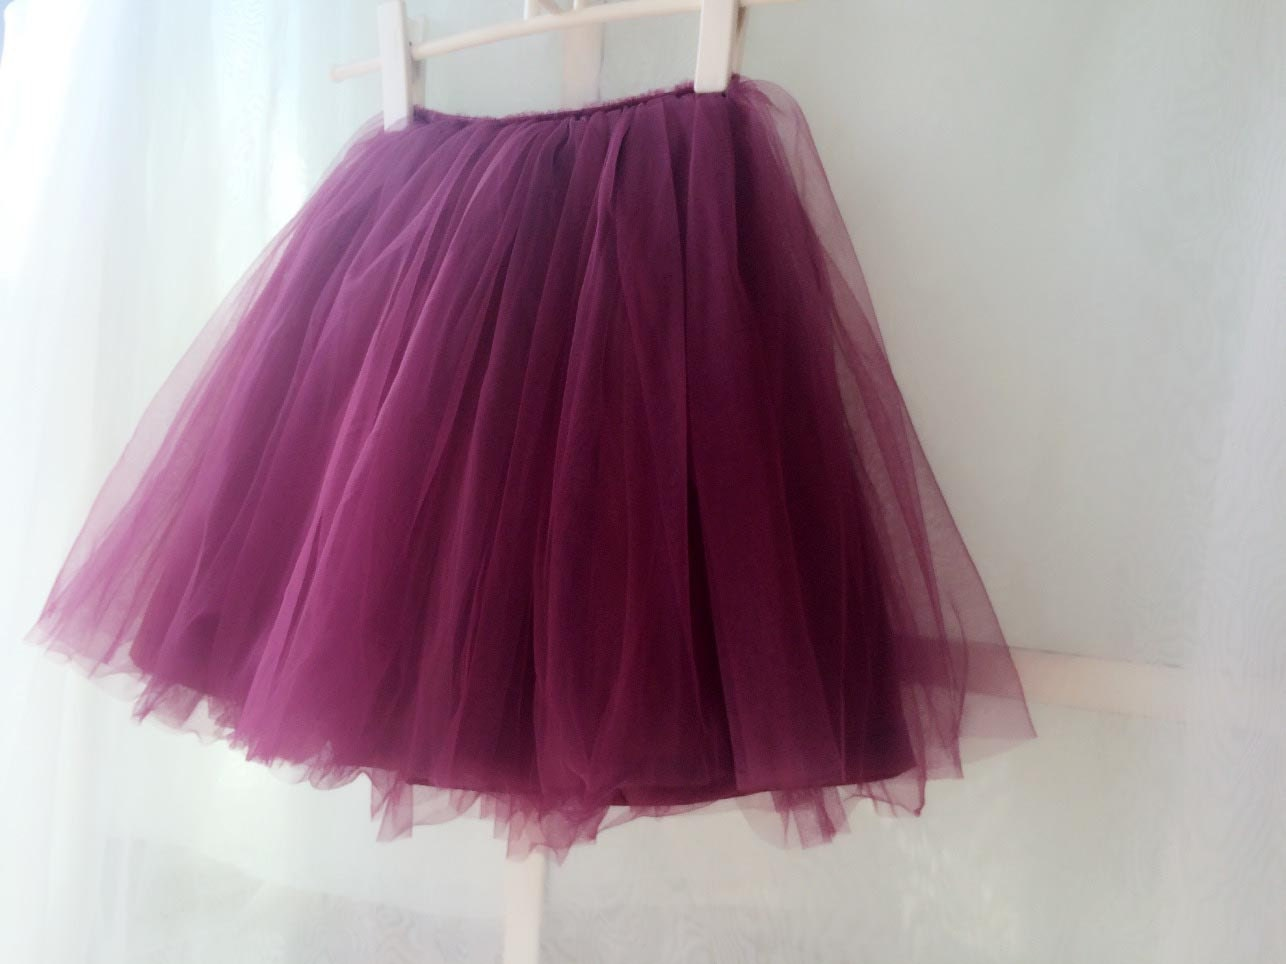 29dde9f8cd Tulle Skirt for flower girl, Mini Tulle Skirt, flower Girls Tulle Skirt ,  Wedding Skirt, little princess -Girls tutu – any color -US4/4T/5/6